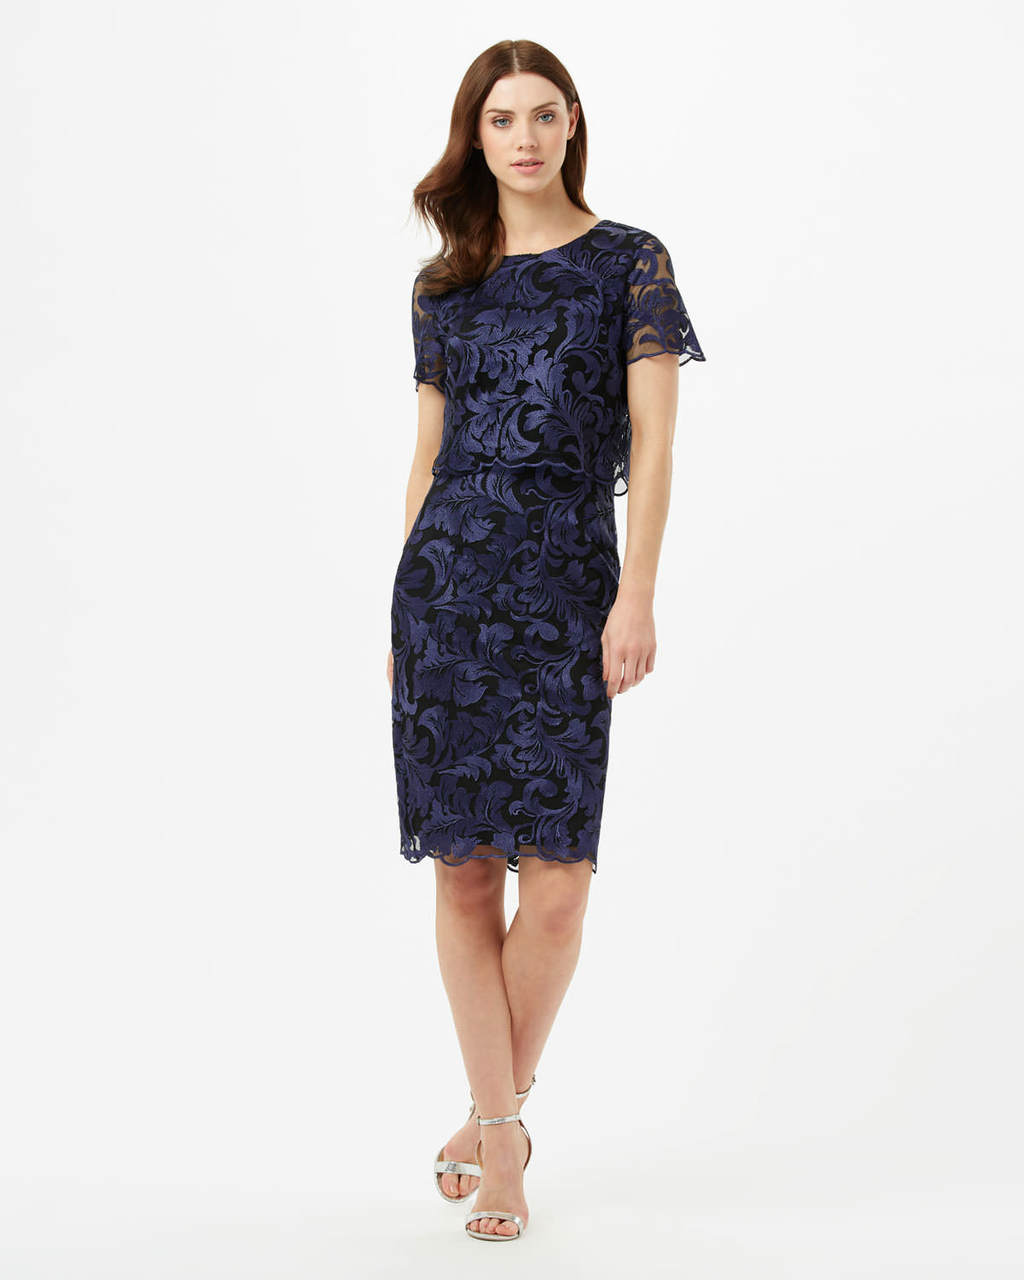 Adelphia Lace Layer Dress - style: shift; fit: tailored/fitted; predominant colour: navy; occasions: evening; length: just above the knee; fibres: polyester/polyamide - 100%; neckline: crew; sleeve length: short sleeve; sleeve style: standard; texture group: lace; pattern type: fabric; pattern size: standard; pattern: patterned/print; season: s/s 2016; wardrobe: event